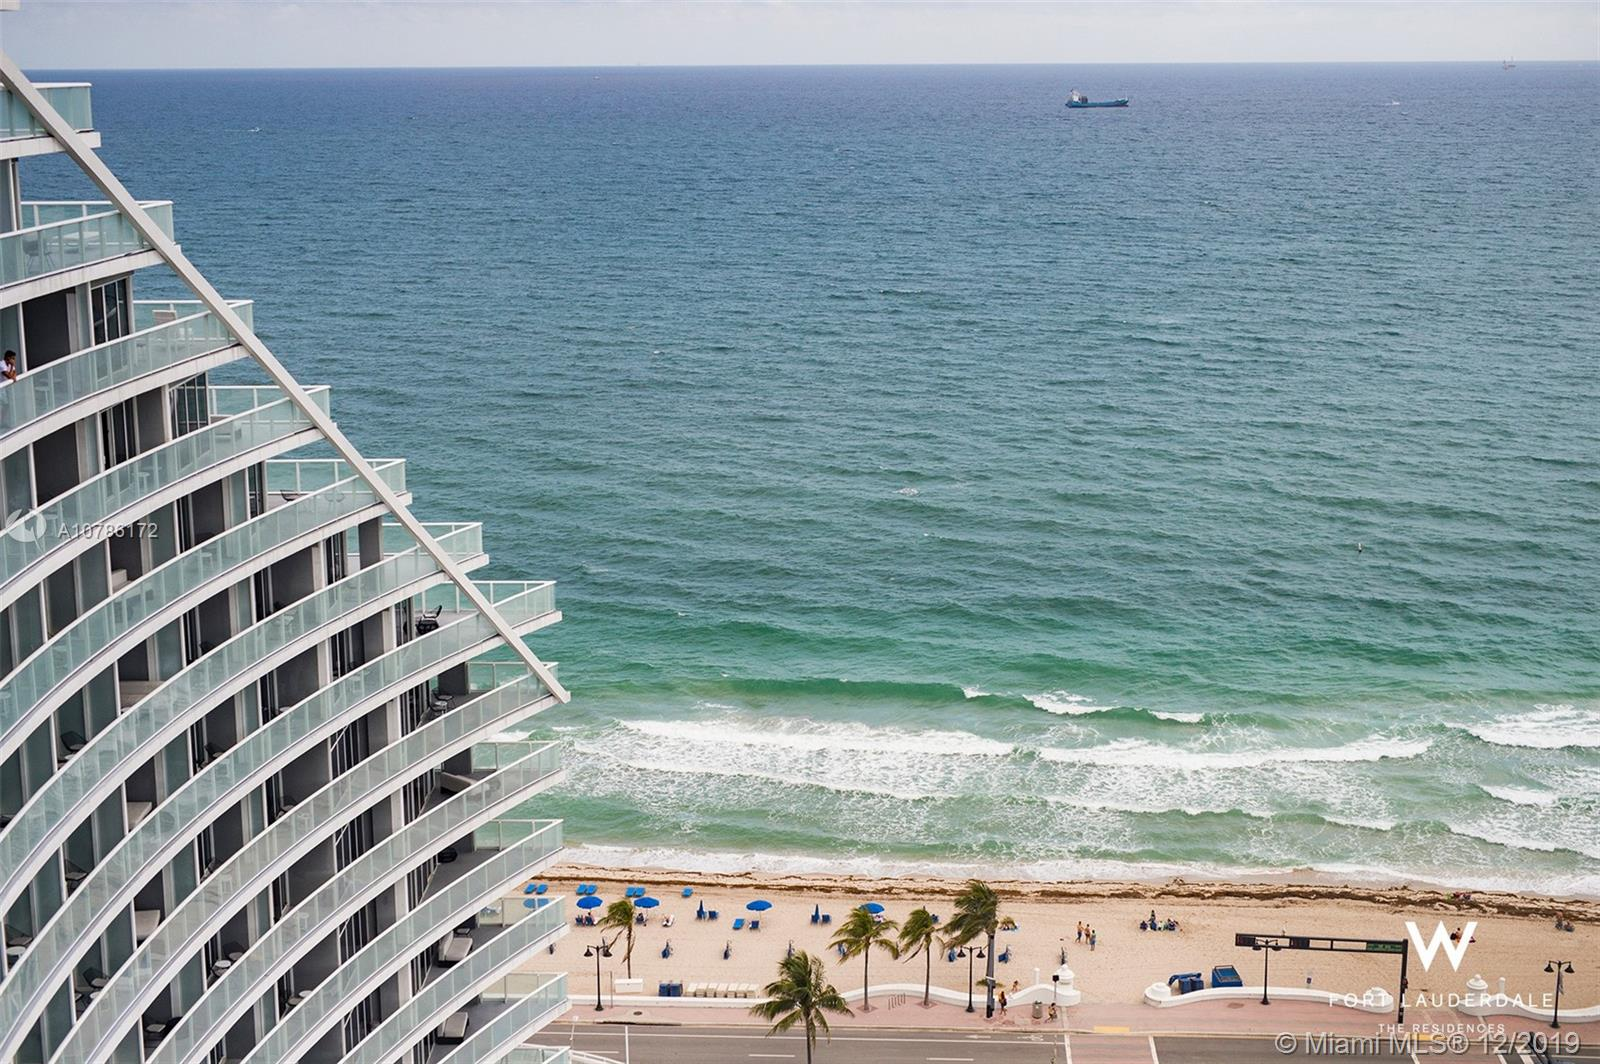 Oceanfront. The W Fort Lauderdale.  Turnkey furnished. Ocean, bay and city views.  Luxury hotel amenities.  Need I say more?  This two-bedroom two-bath unit is a stylish and practical venue for all the good times you, your guests, or your tenants, could ever hope to enjoy!! Located in the heart of Fort Lauderdale Beach's renaissance, the venue offers hotel amenities, including multiple acclaimed Stephen Starr restaurants, a sushi bar, poolside grill and The Living Room Lounge, heated swimming pool, private VIP salt water pool, spa, fitness center, lounges and valet parking.  707 is a south east corner unit with open layout, full kitchen, elegant master suite and lots of room for entertaining and overnight guests.  Currently in hotel program, but can be owner occupied as per your needs.